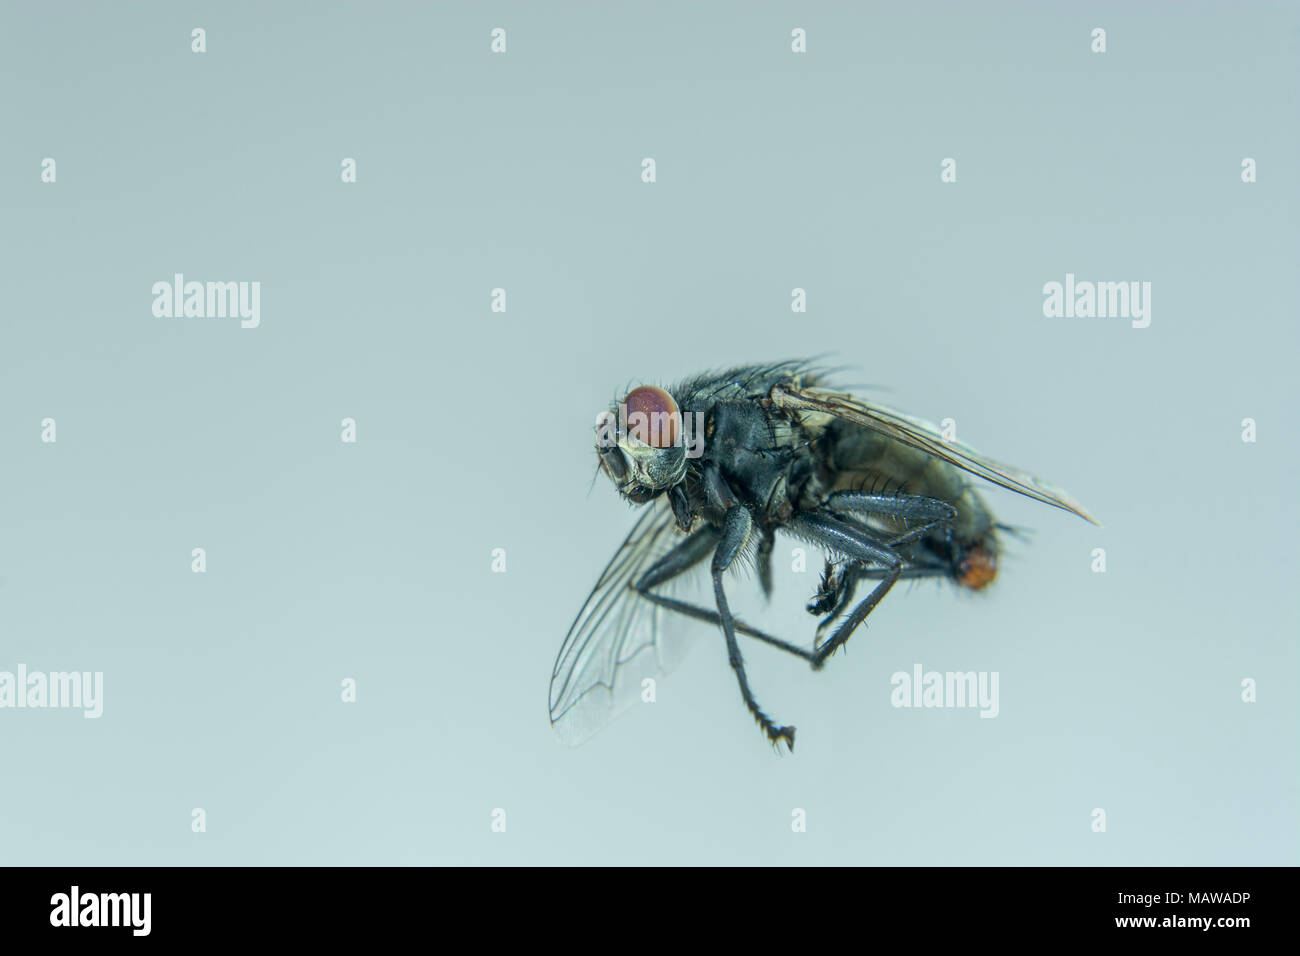 Insect Pests Stock Photos & Insect Pests Stock Images - Alamy